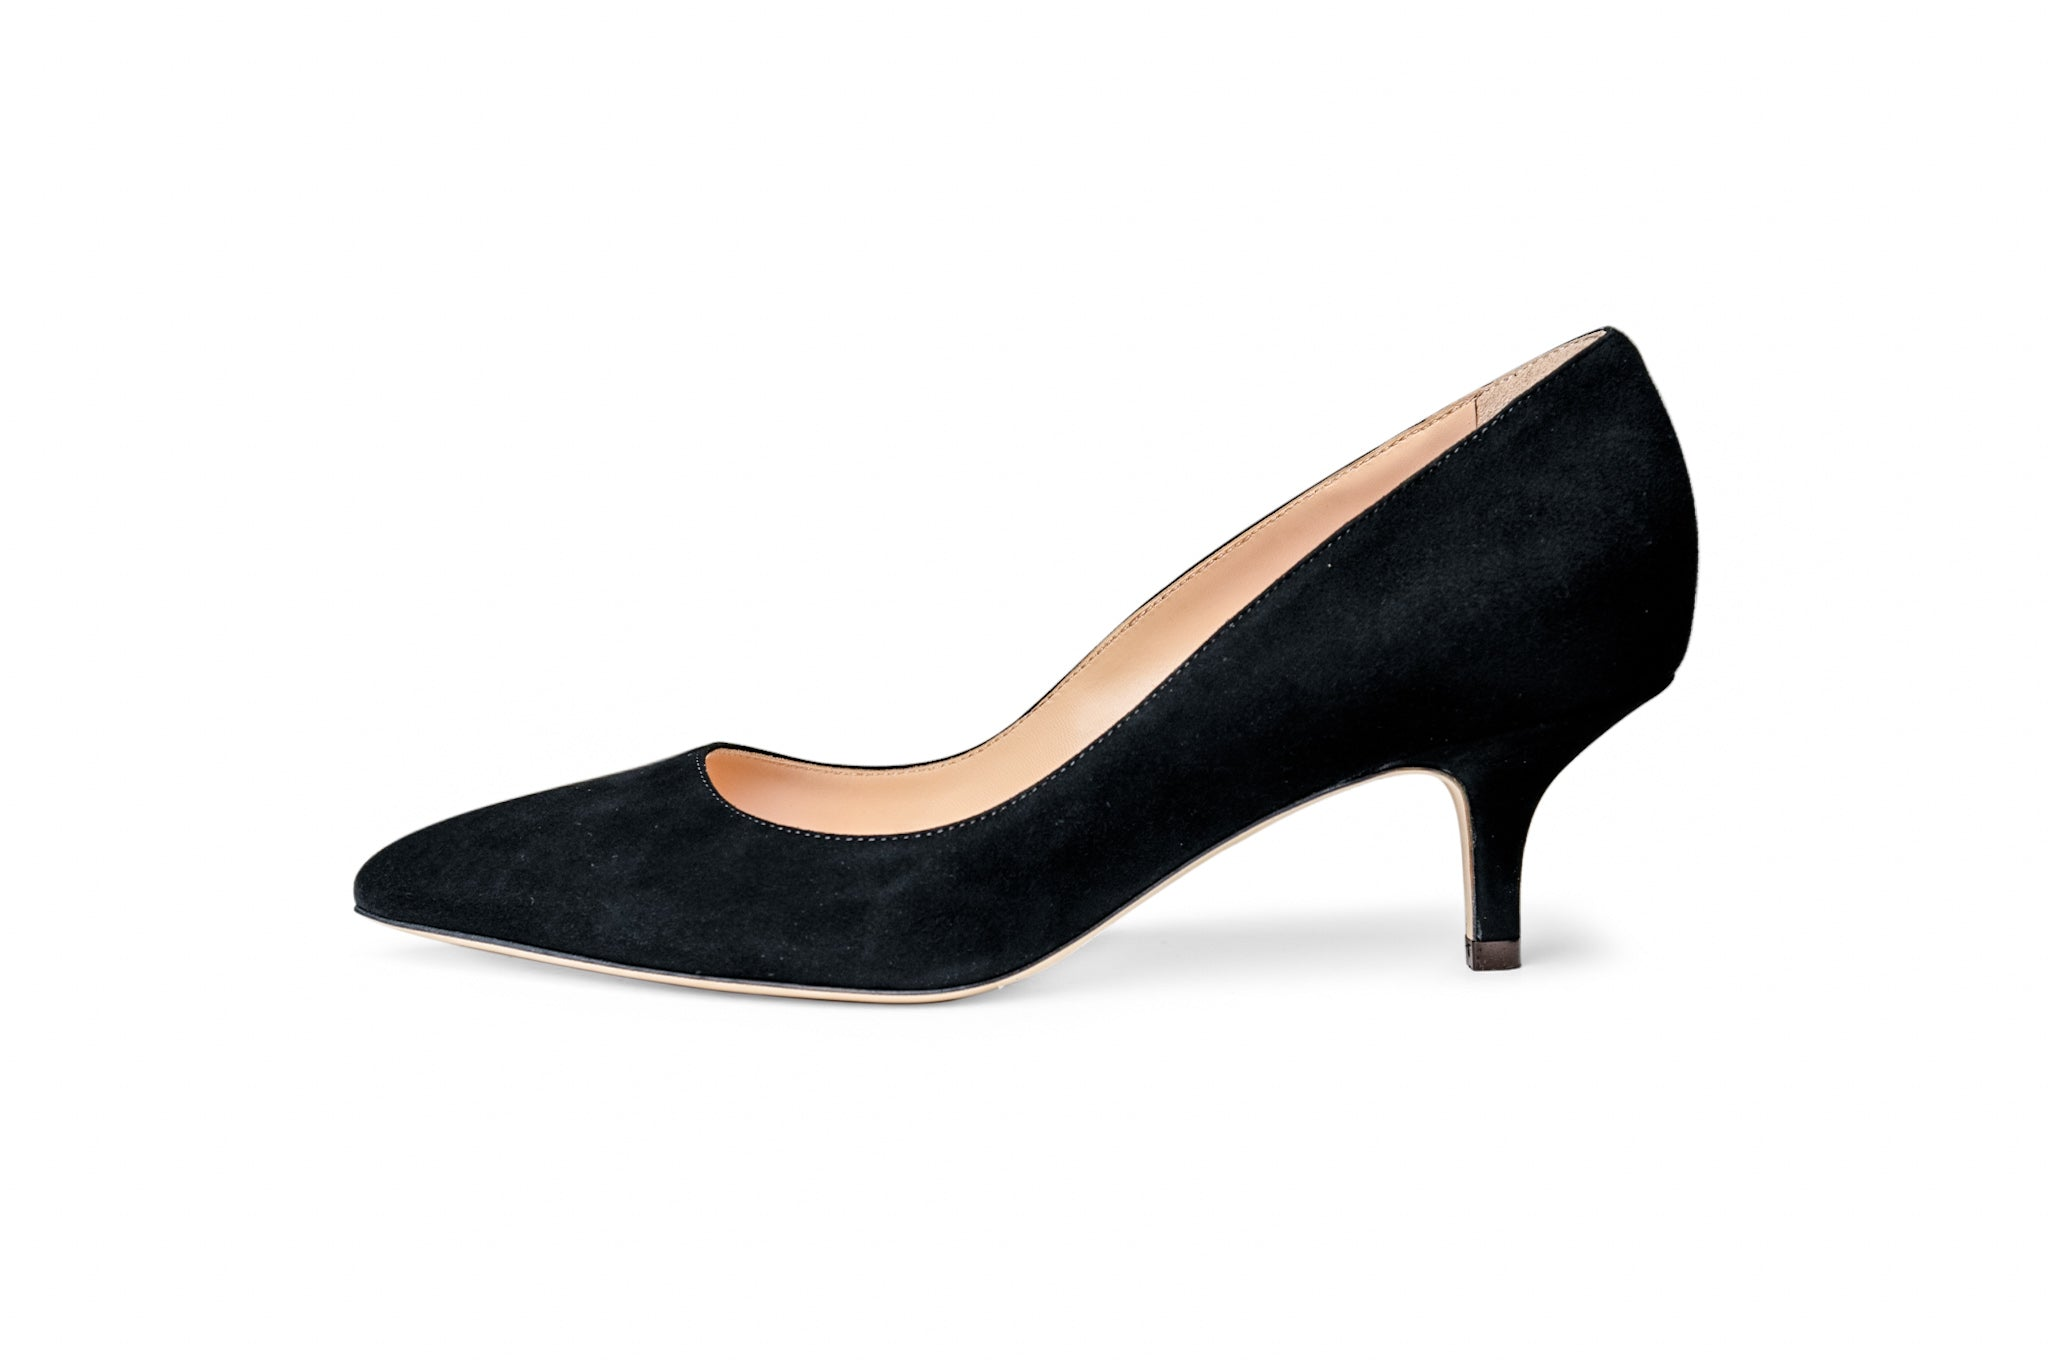 The Black Collection - 50mm Heel in Italian Suede